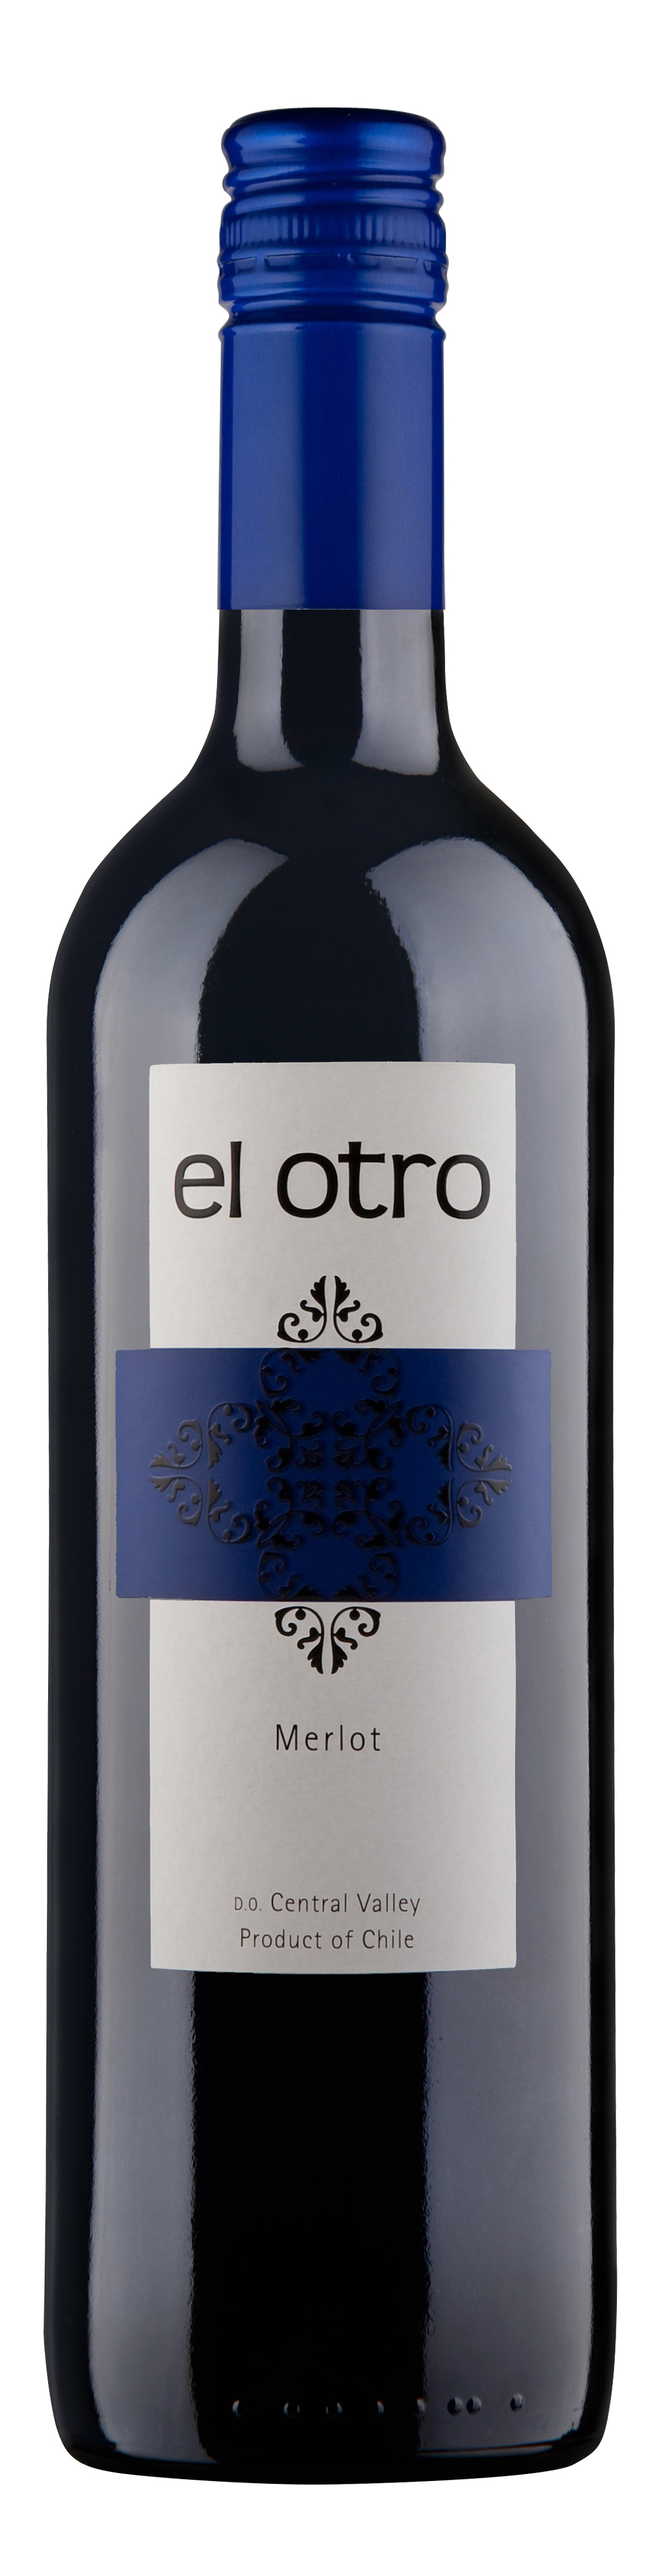 El Otro Merlot Wine Supplier